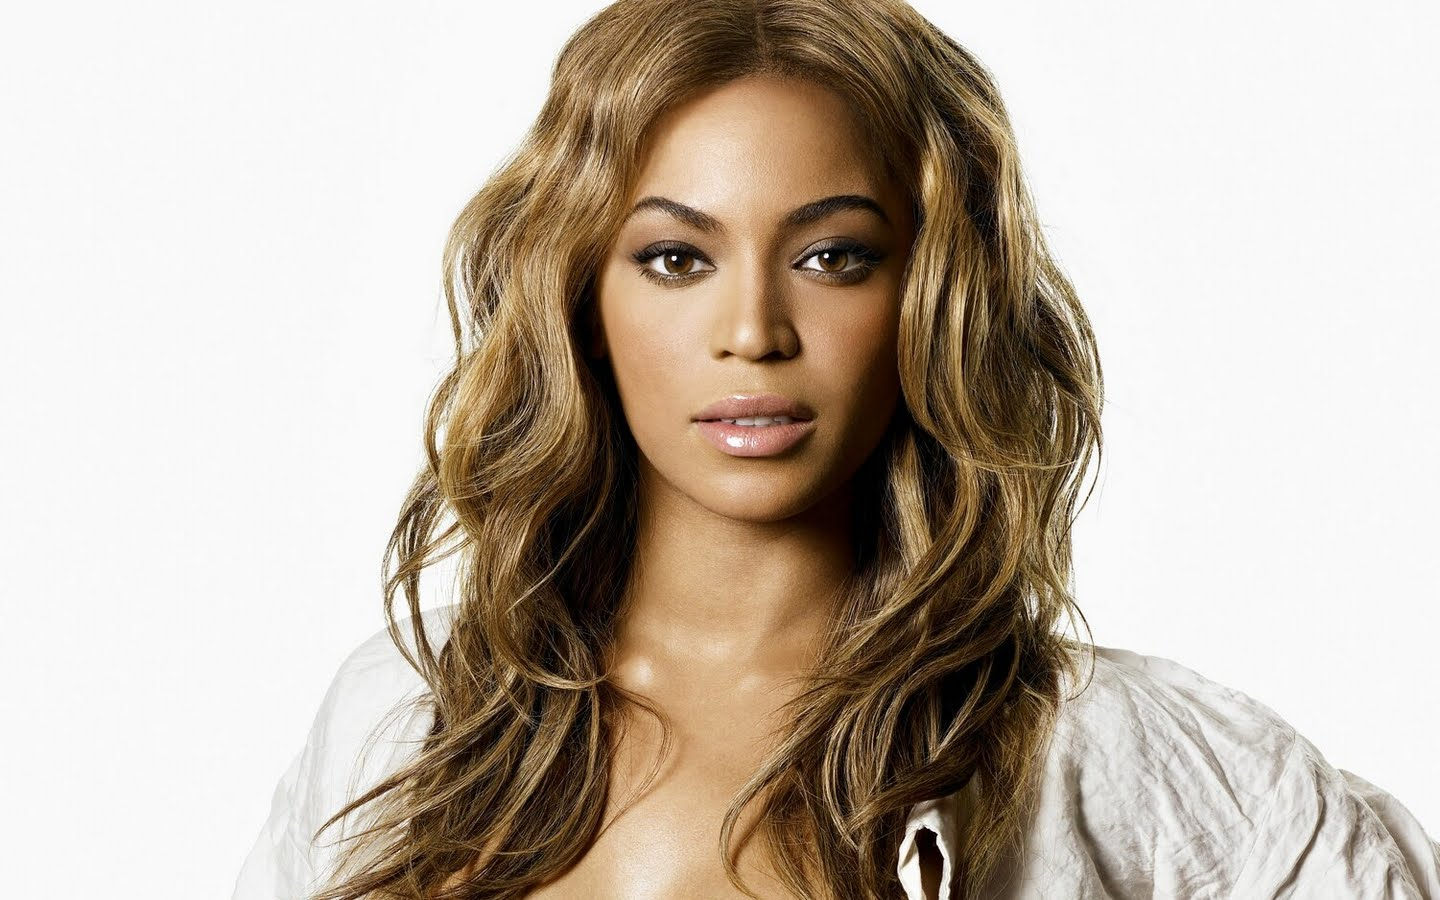 ea4f74516b0aa4ce2a9b319a36bb9dd3 Beyonce Explains Meaning Behind BaddieBey Moniker